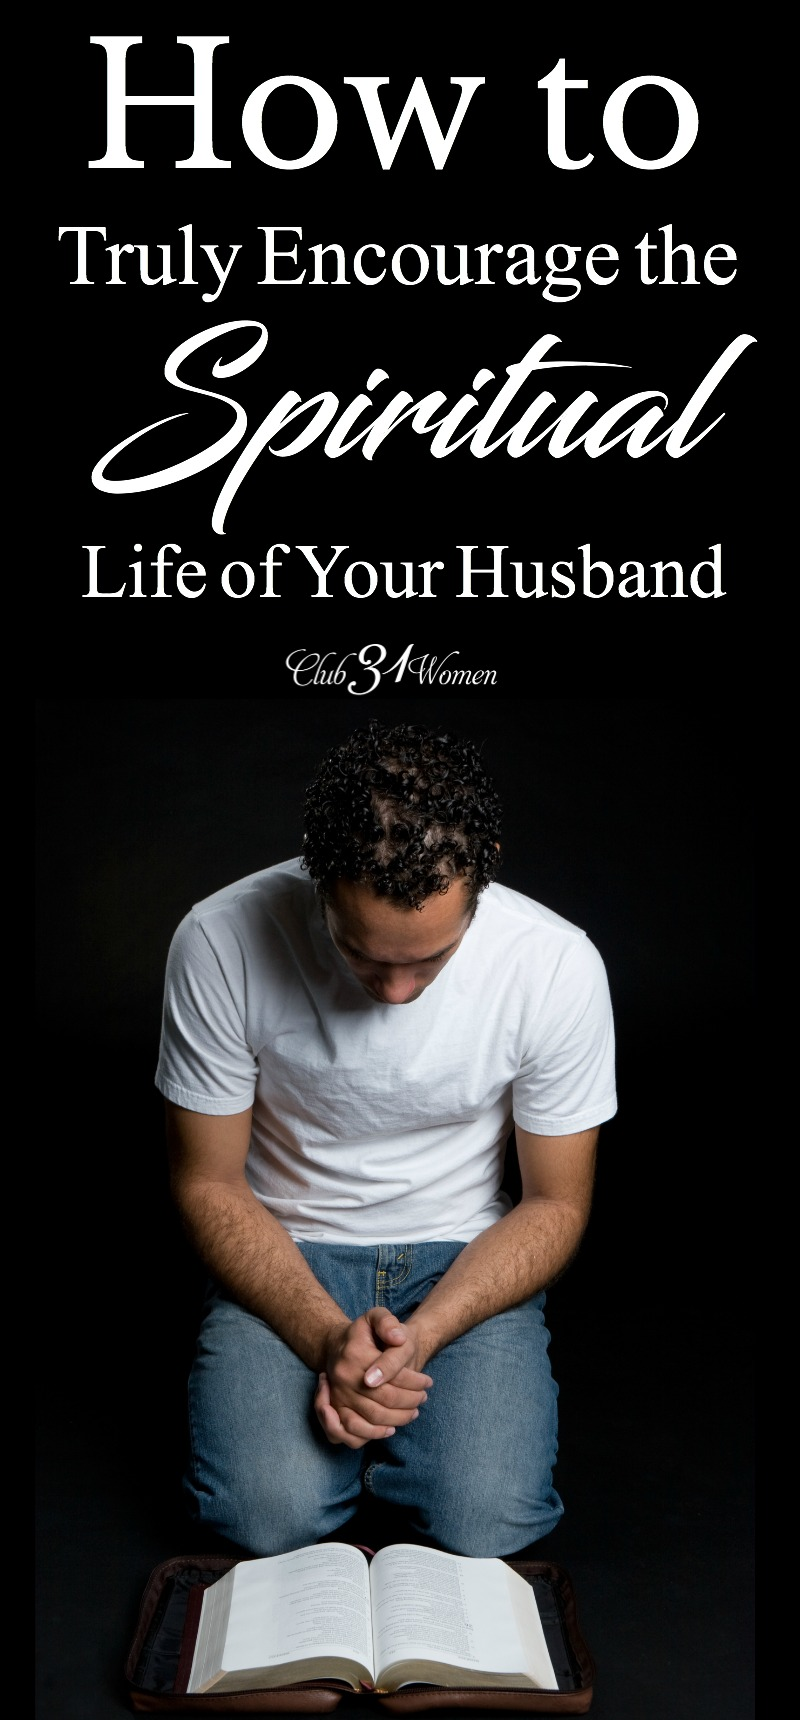 What can a wife do when her man is down? Discouraged? Even defeated? Here are some ways you can encourage your husband when he could use some lifting up! via @Club31Women